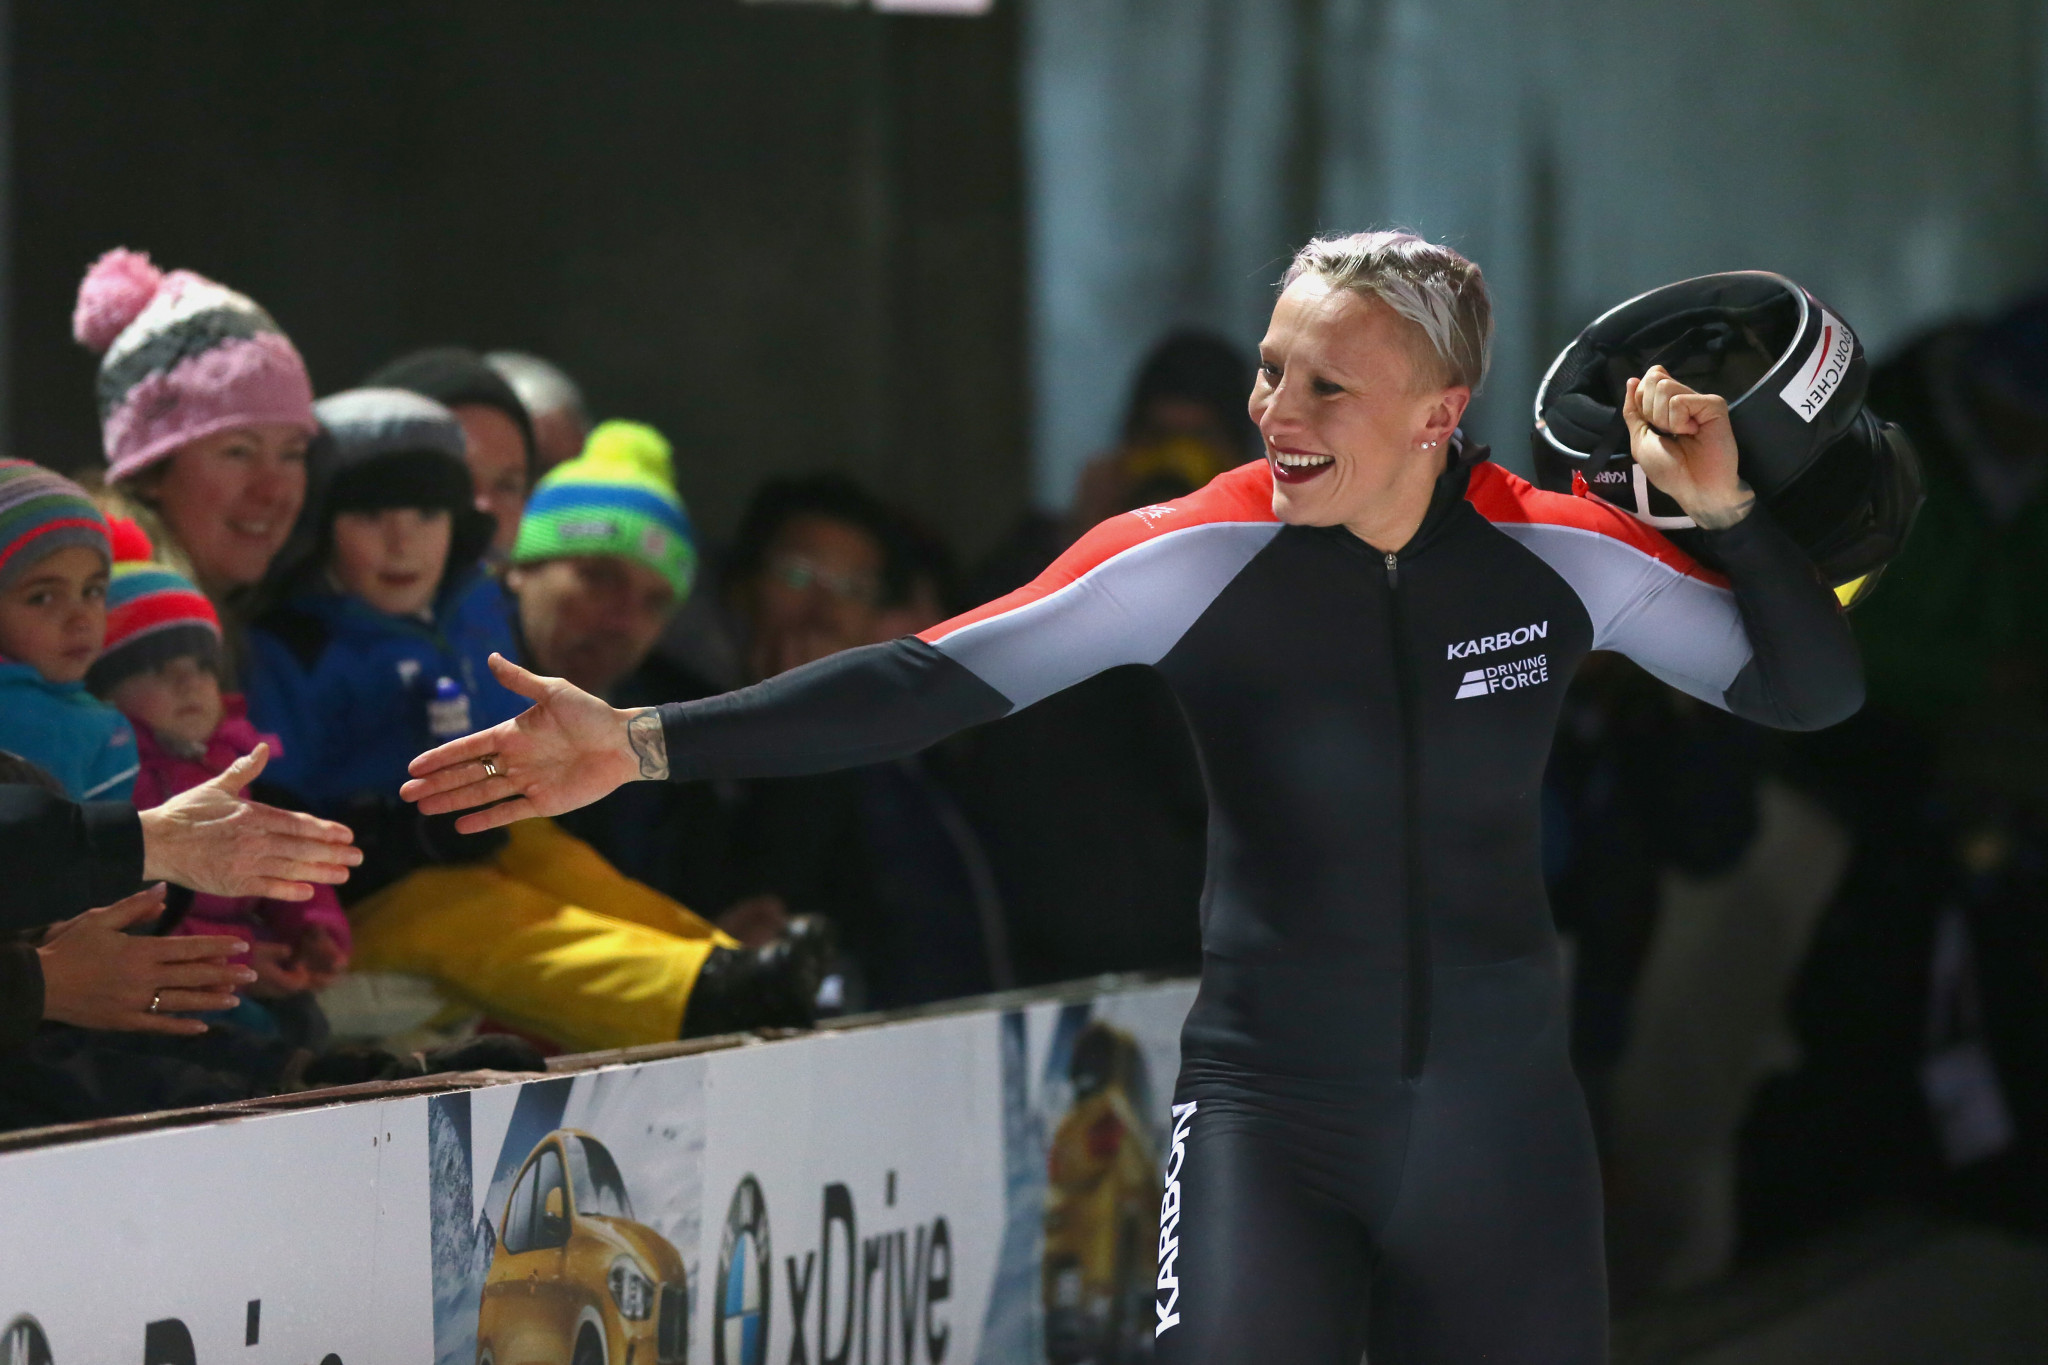 Double Olympic bobsleigh champion Kaillie Humphries says representing Canada was the greatest honour ©Getty Images